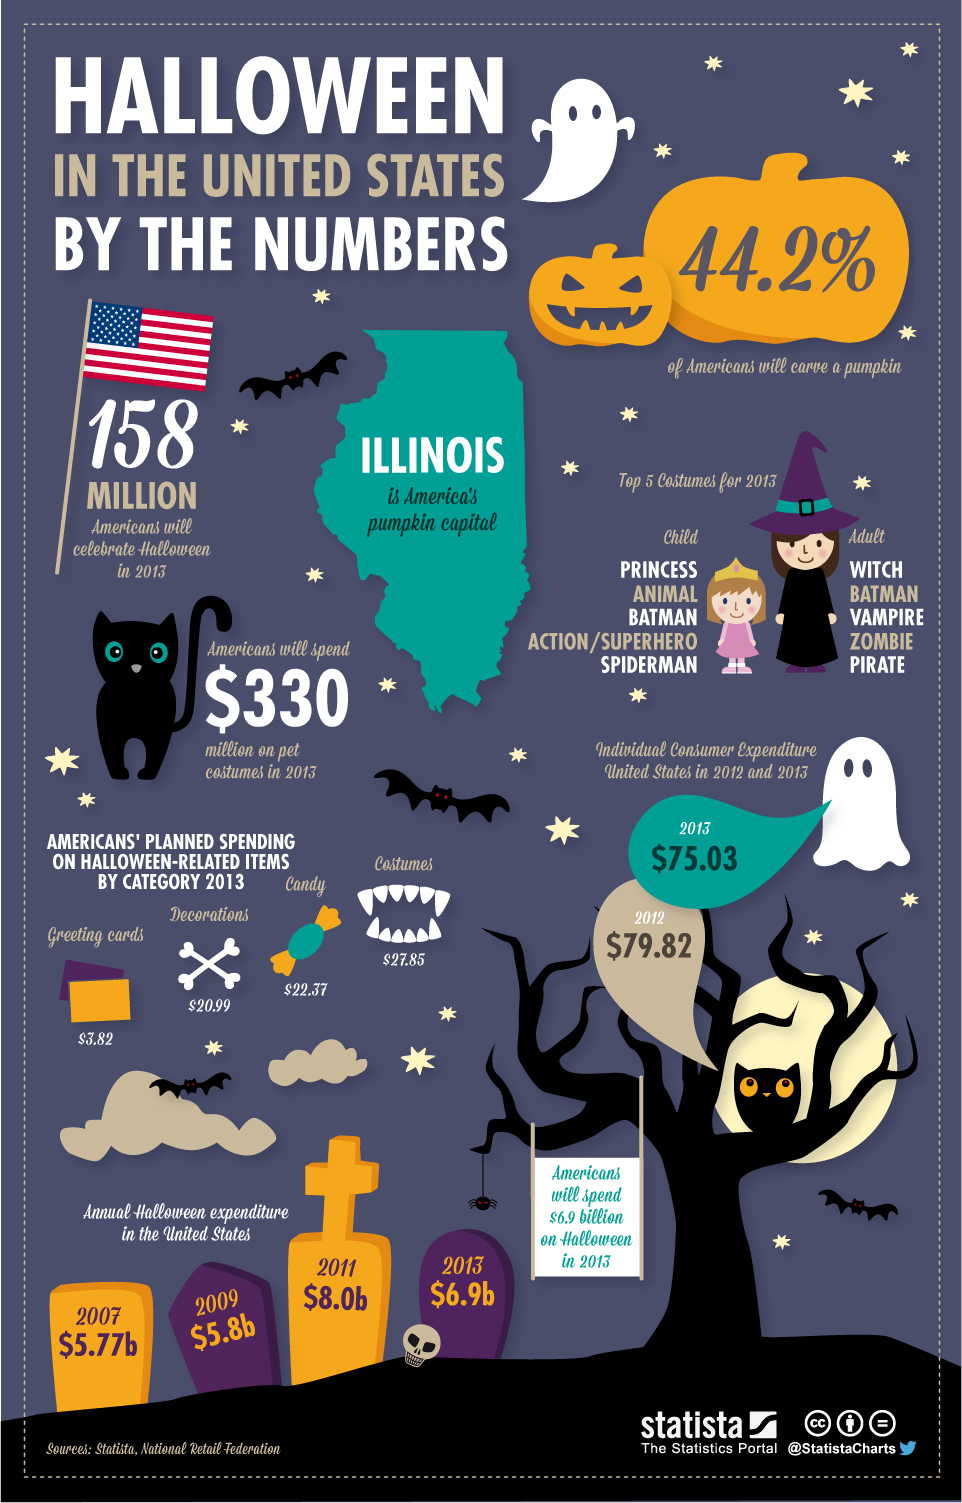 chartoftheday_1586_Halloween_in_the_United_States_By_the_Numbers_b